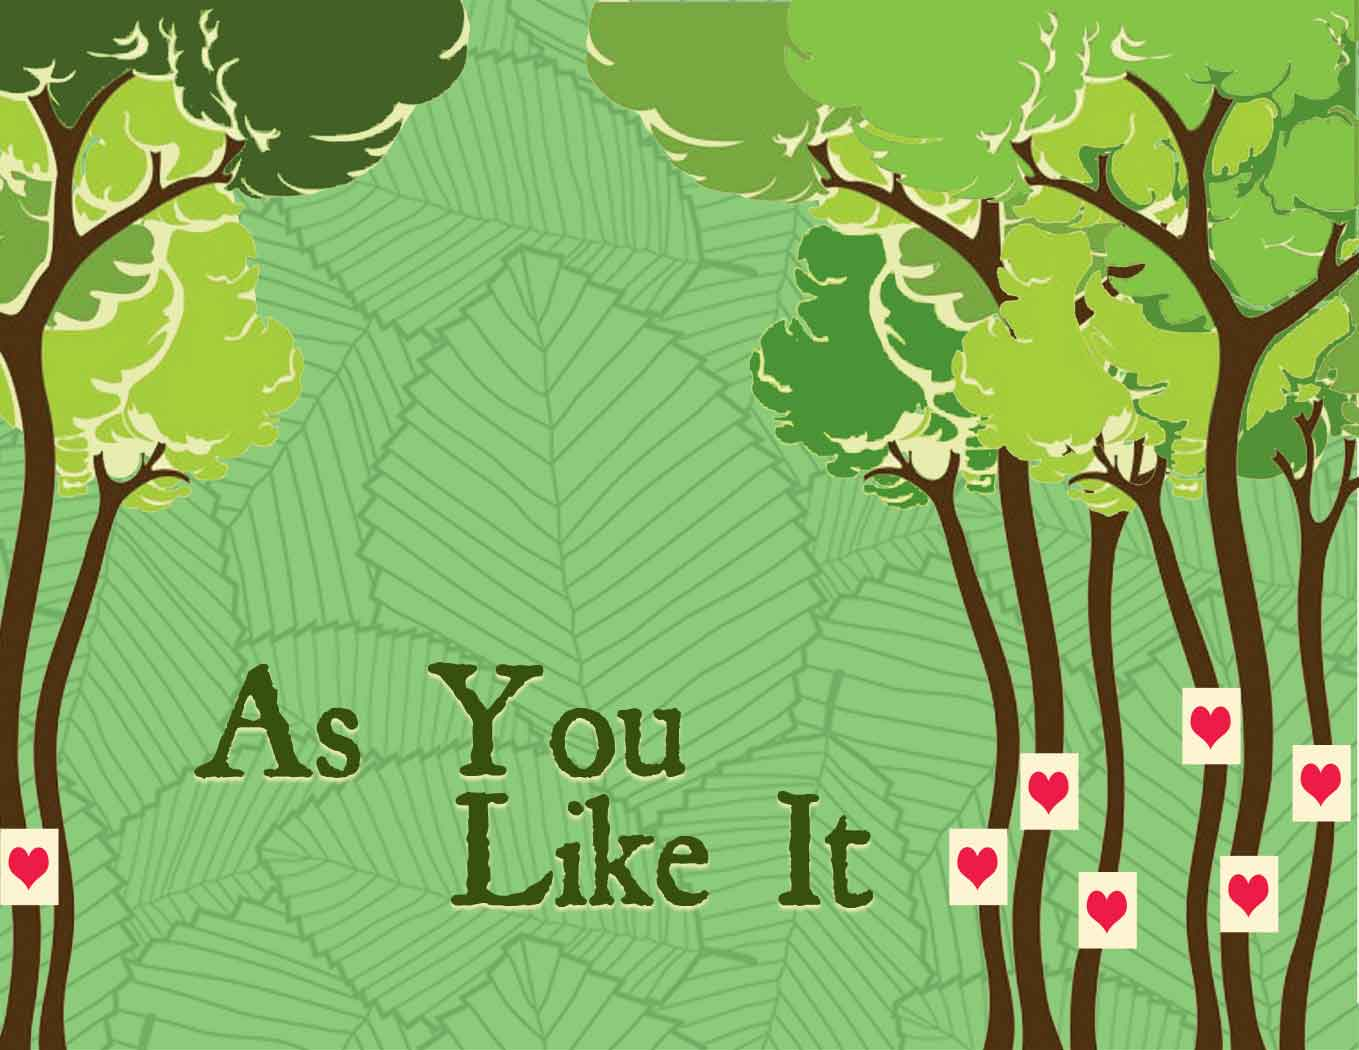 2017 Summer Class Tour presents As You Like It on UT Campus